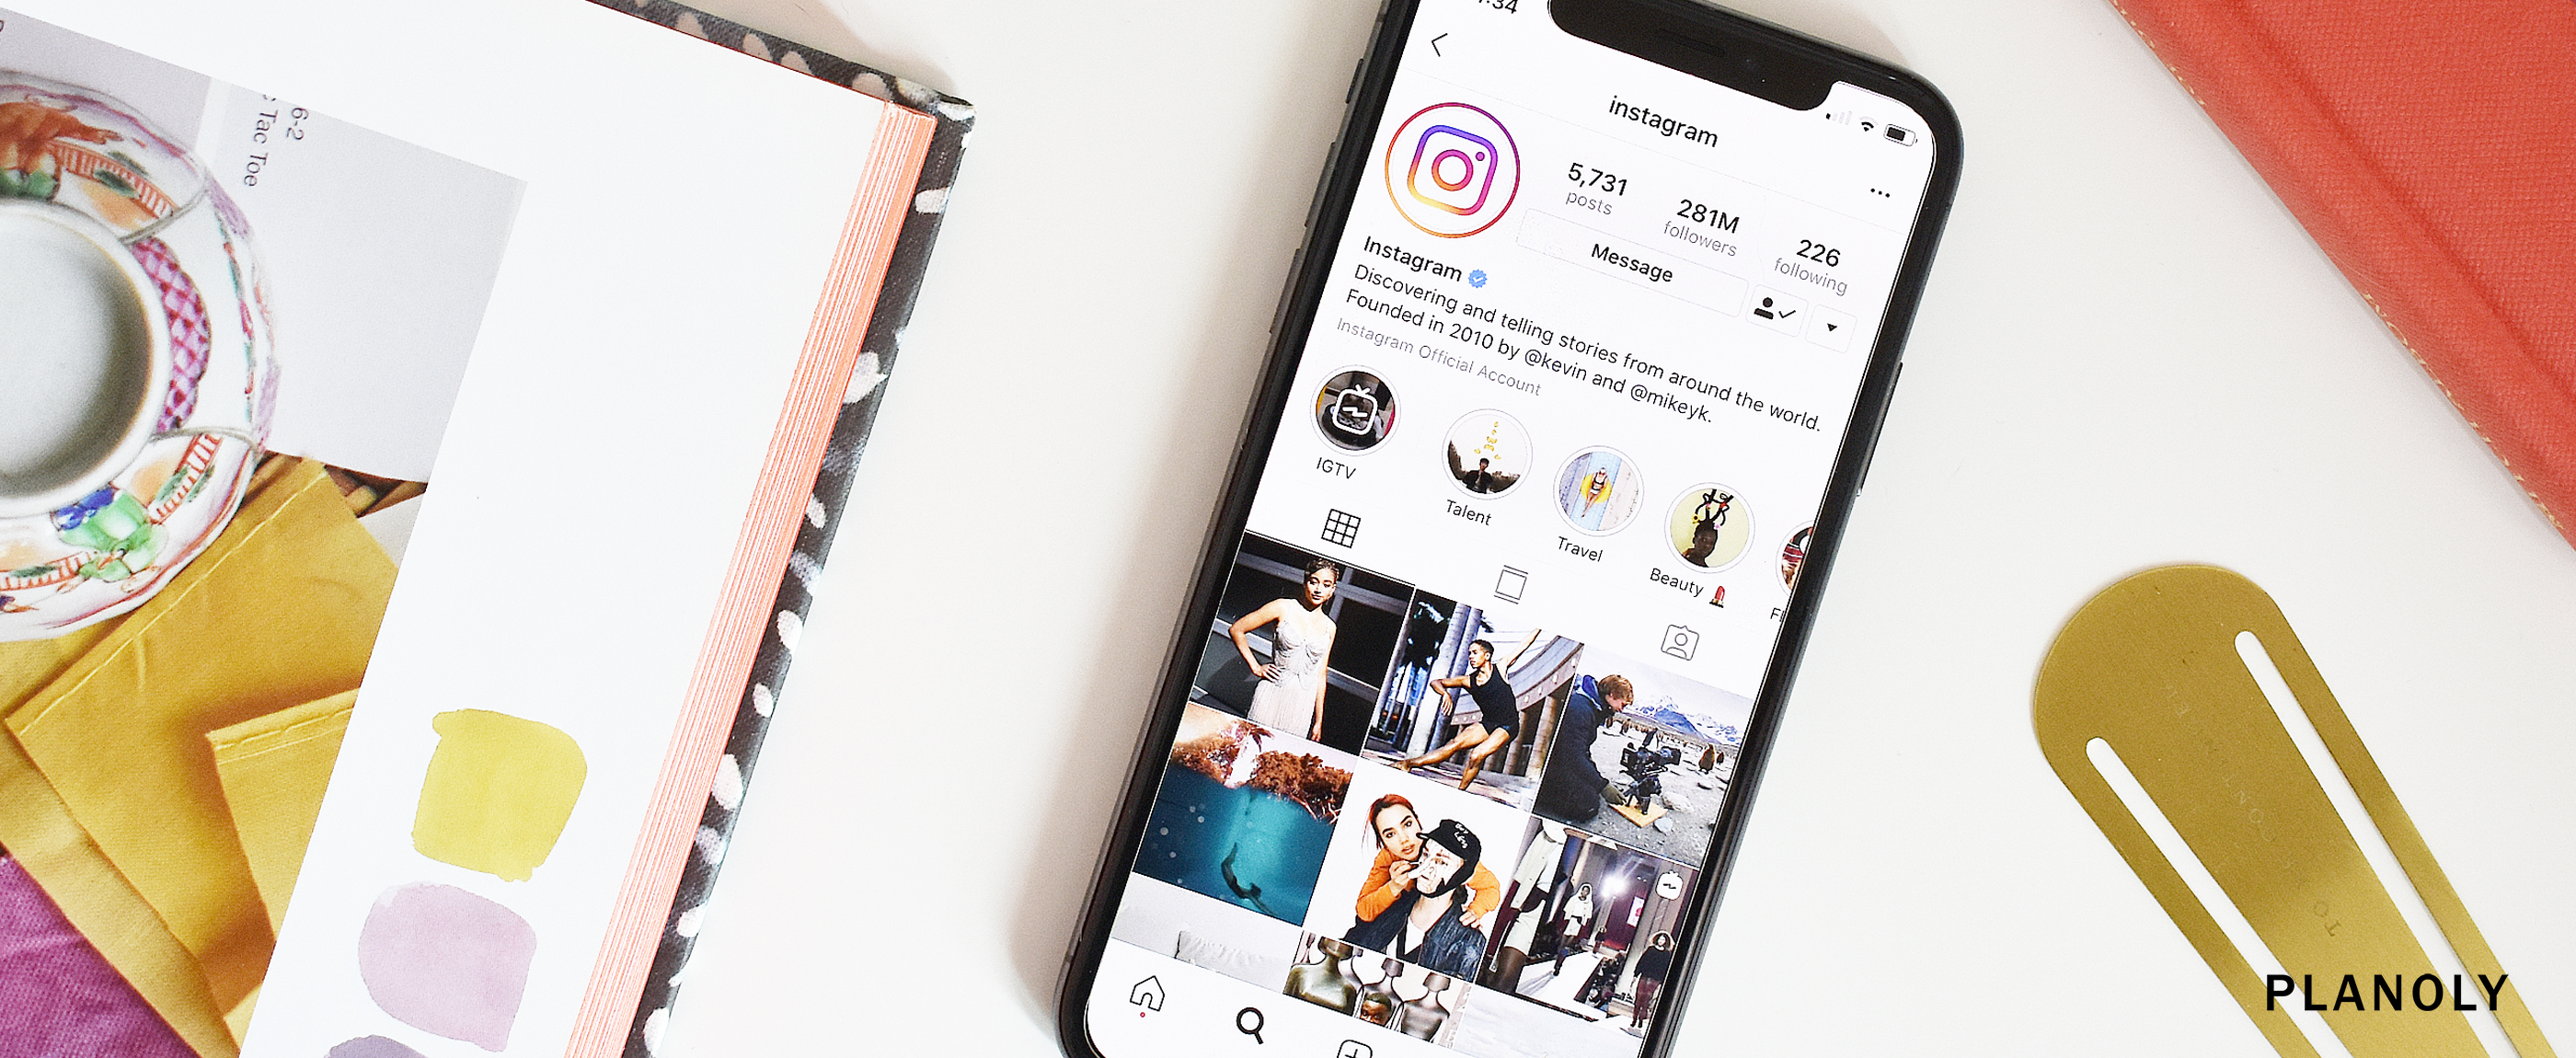 PlanoLinks: Pinstagram, IGTV News, and Infographics